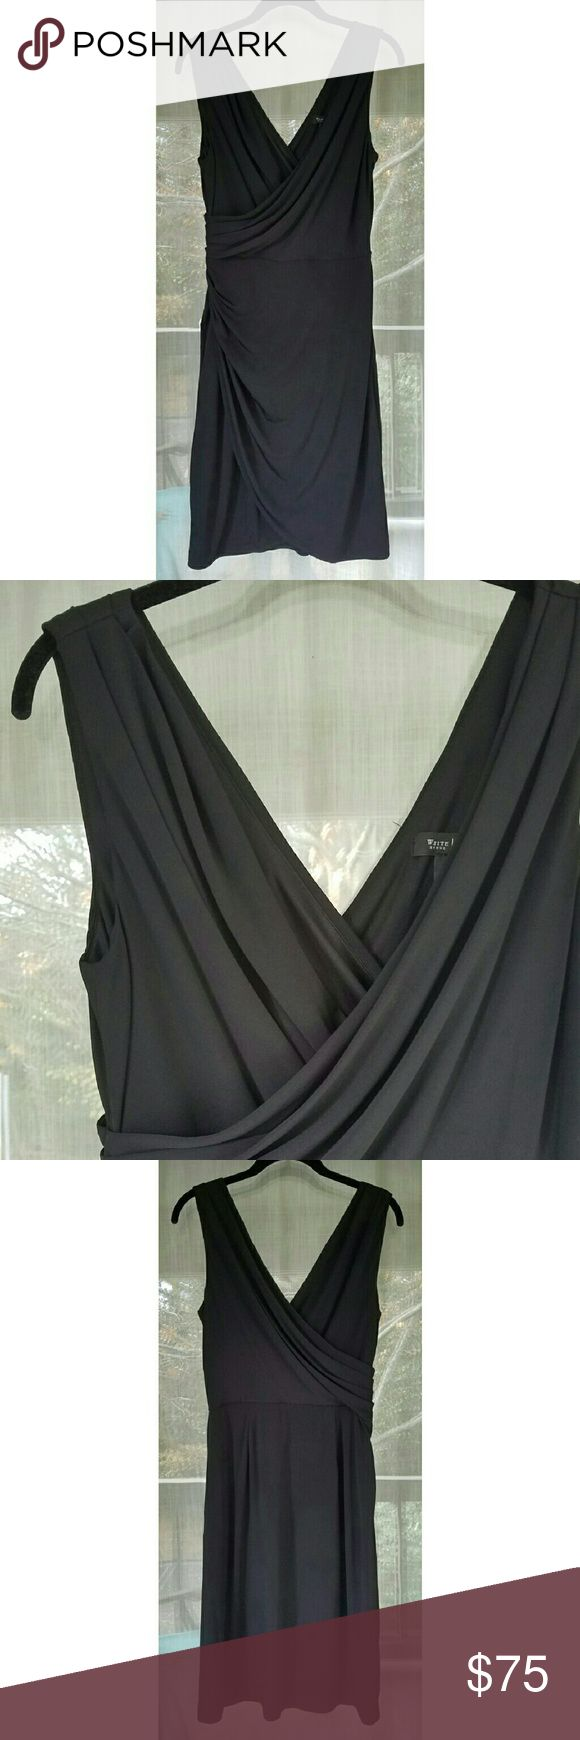 Wrap v neck black dress Beautiful dress with wrap-like fabric lay. New with tags! Shell 95% polyester, 5% spandex. Lining 100% polyester. Side zip. White House Black Market Dresses